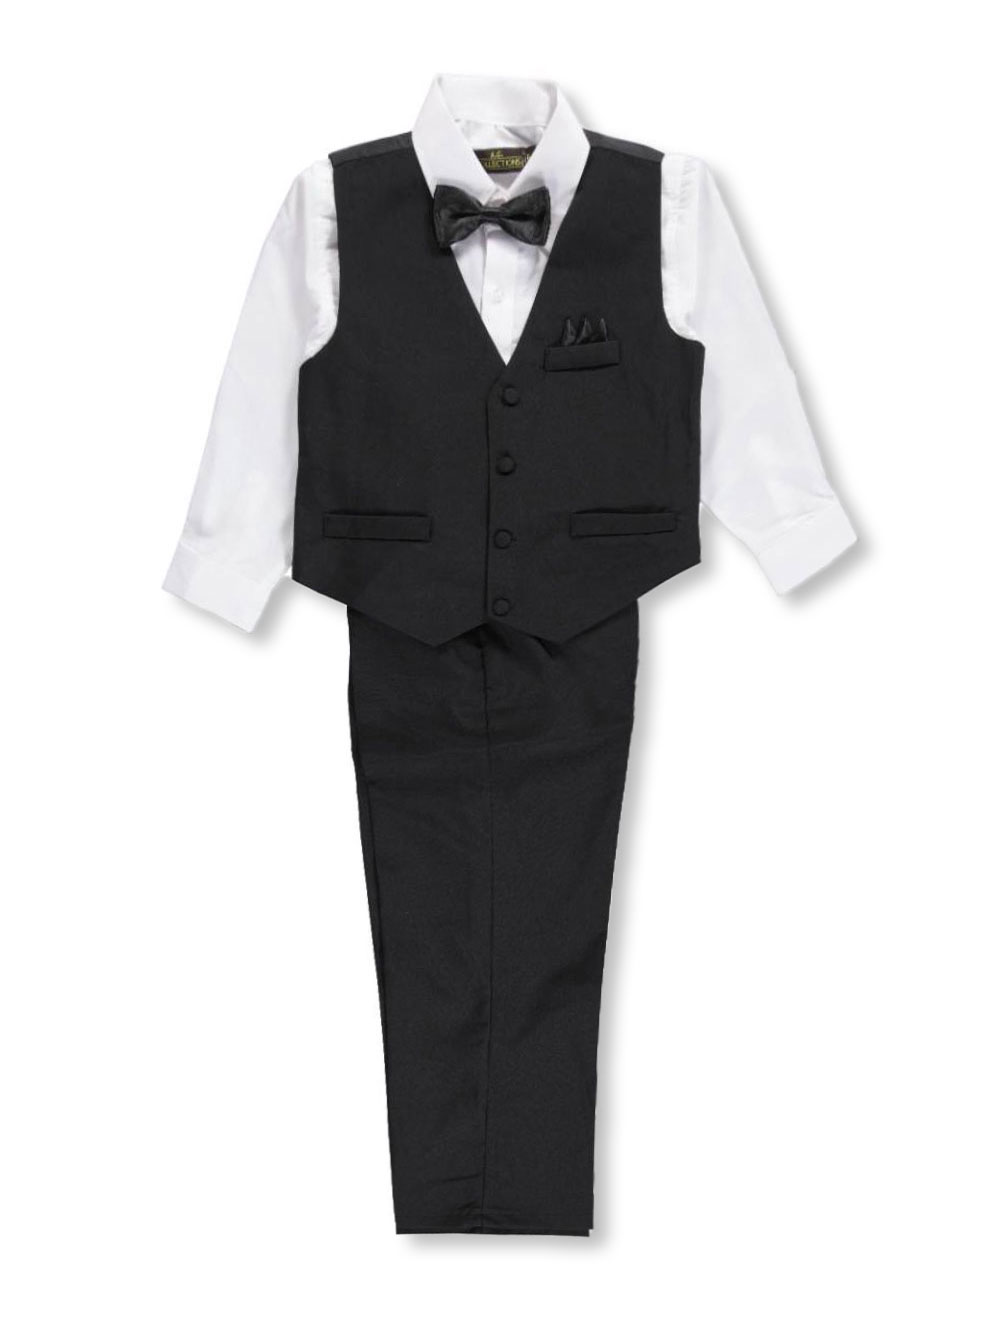 Size 12 Formal Pant Sets for Boys